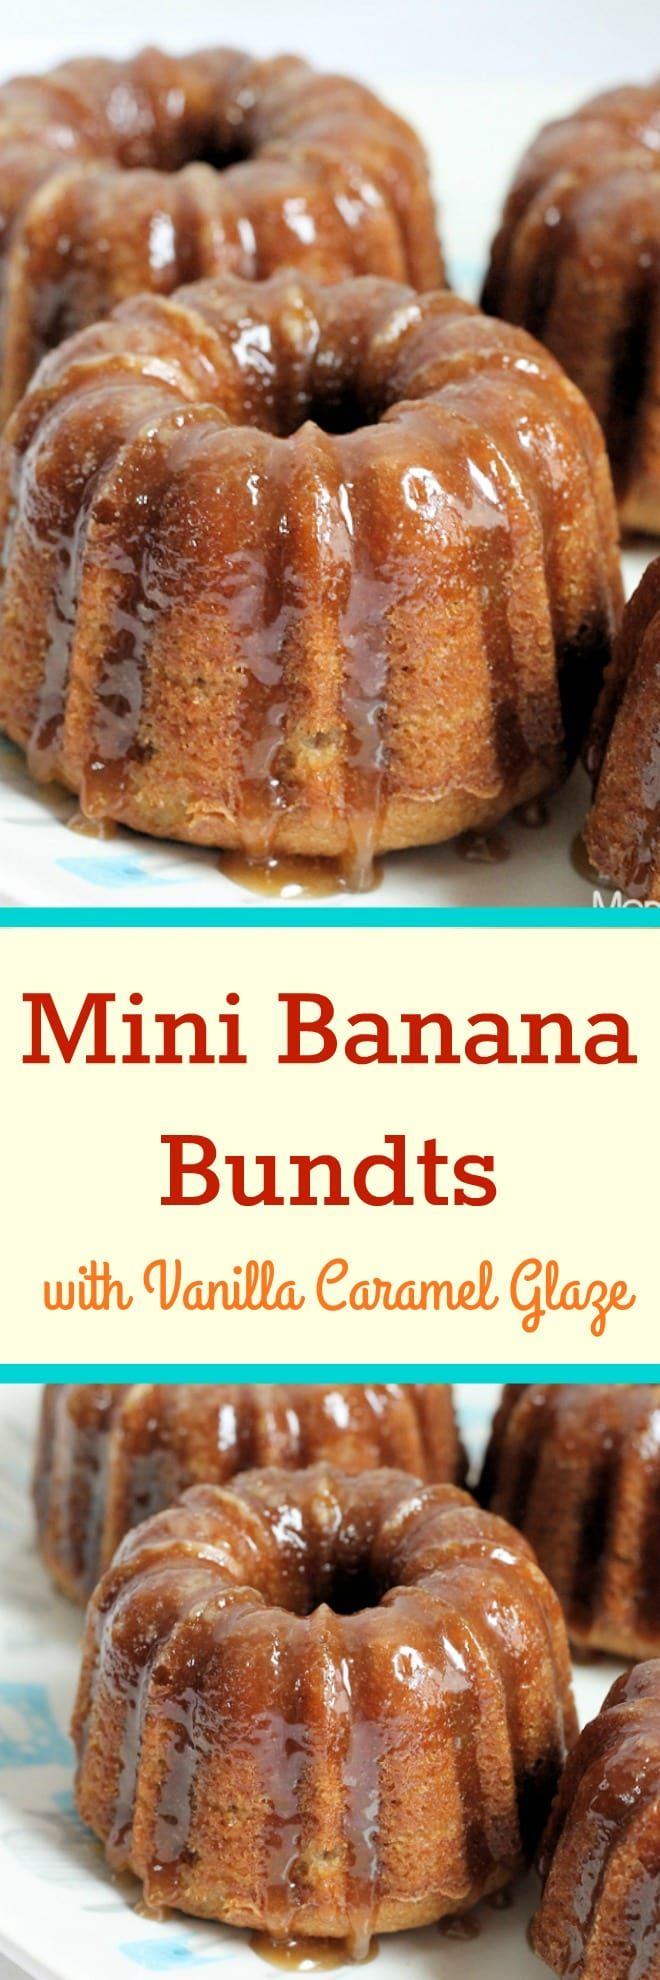 Mini Banana Bundt Cakes with Vanilla Caramel Glaze